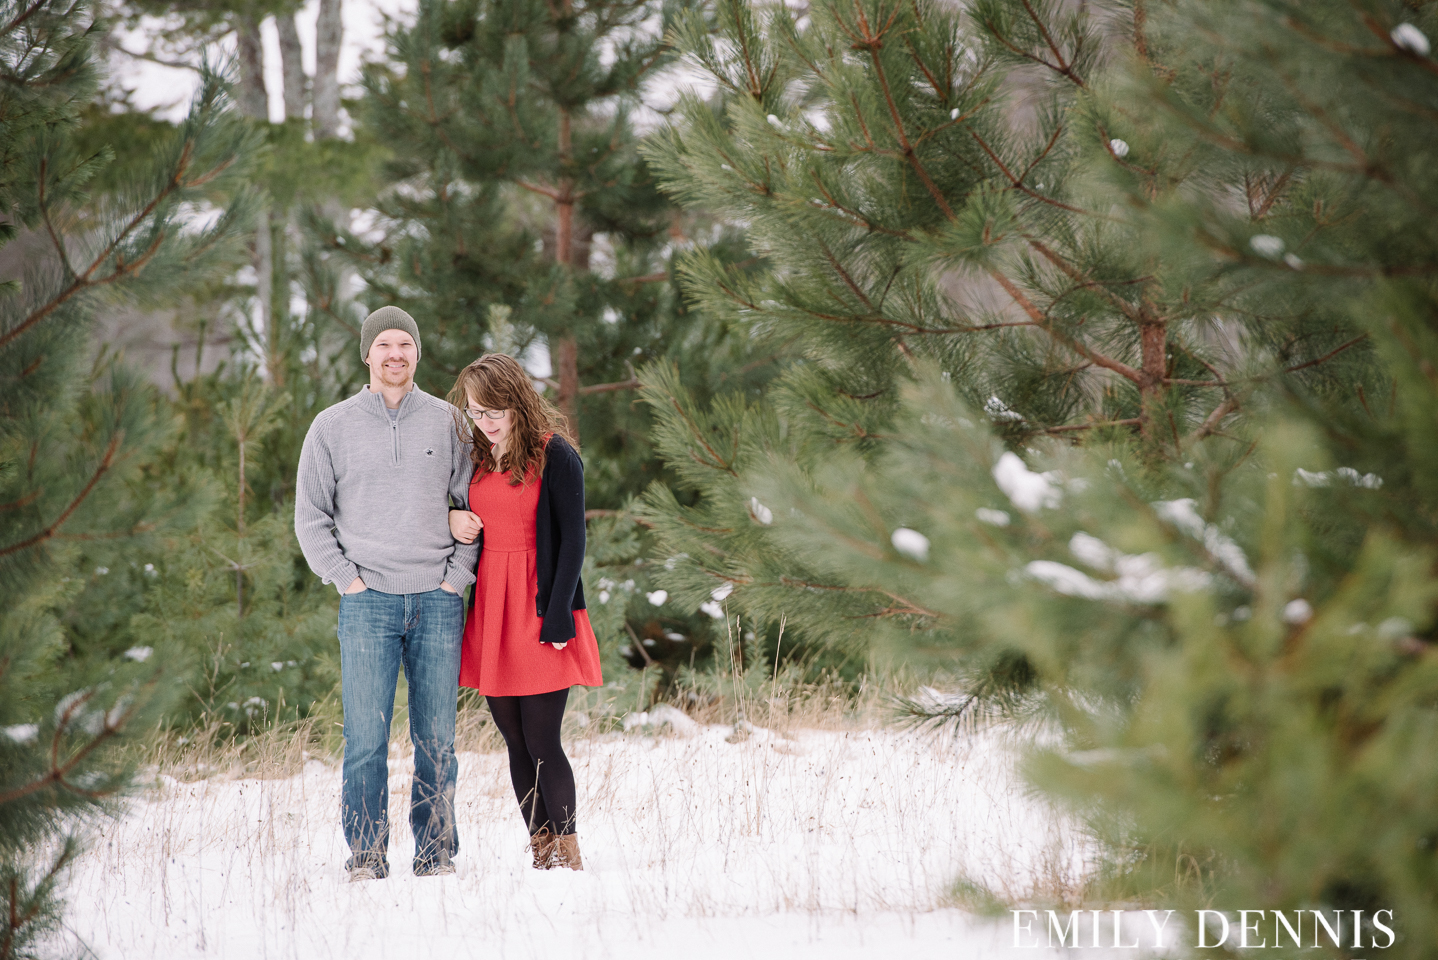 EMILY_DENNIS_PHOTOGRAPHY_engagement-10